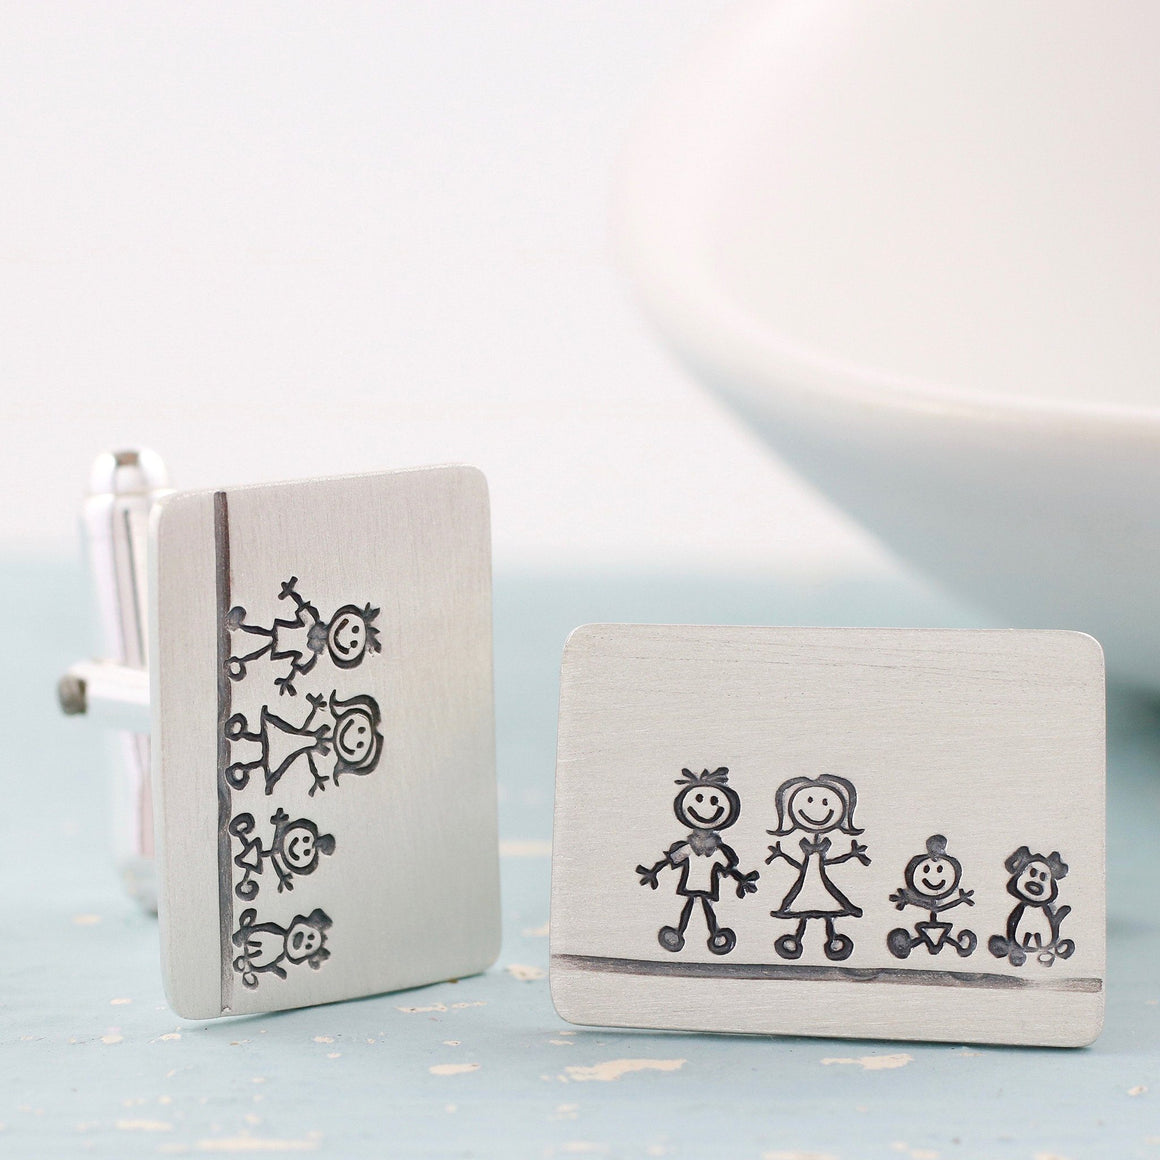 Personalised 'My Family' Silver Cufflinks